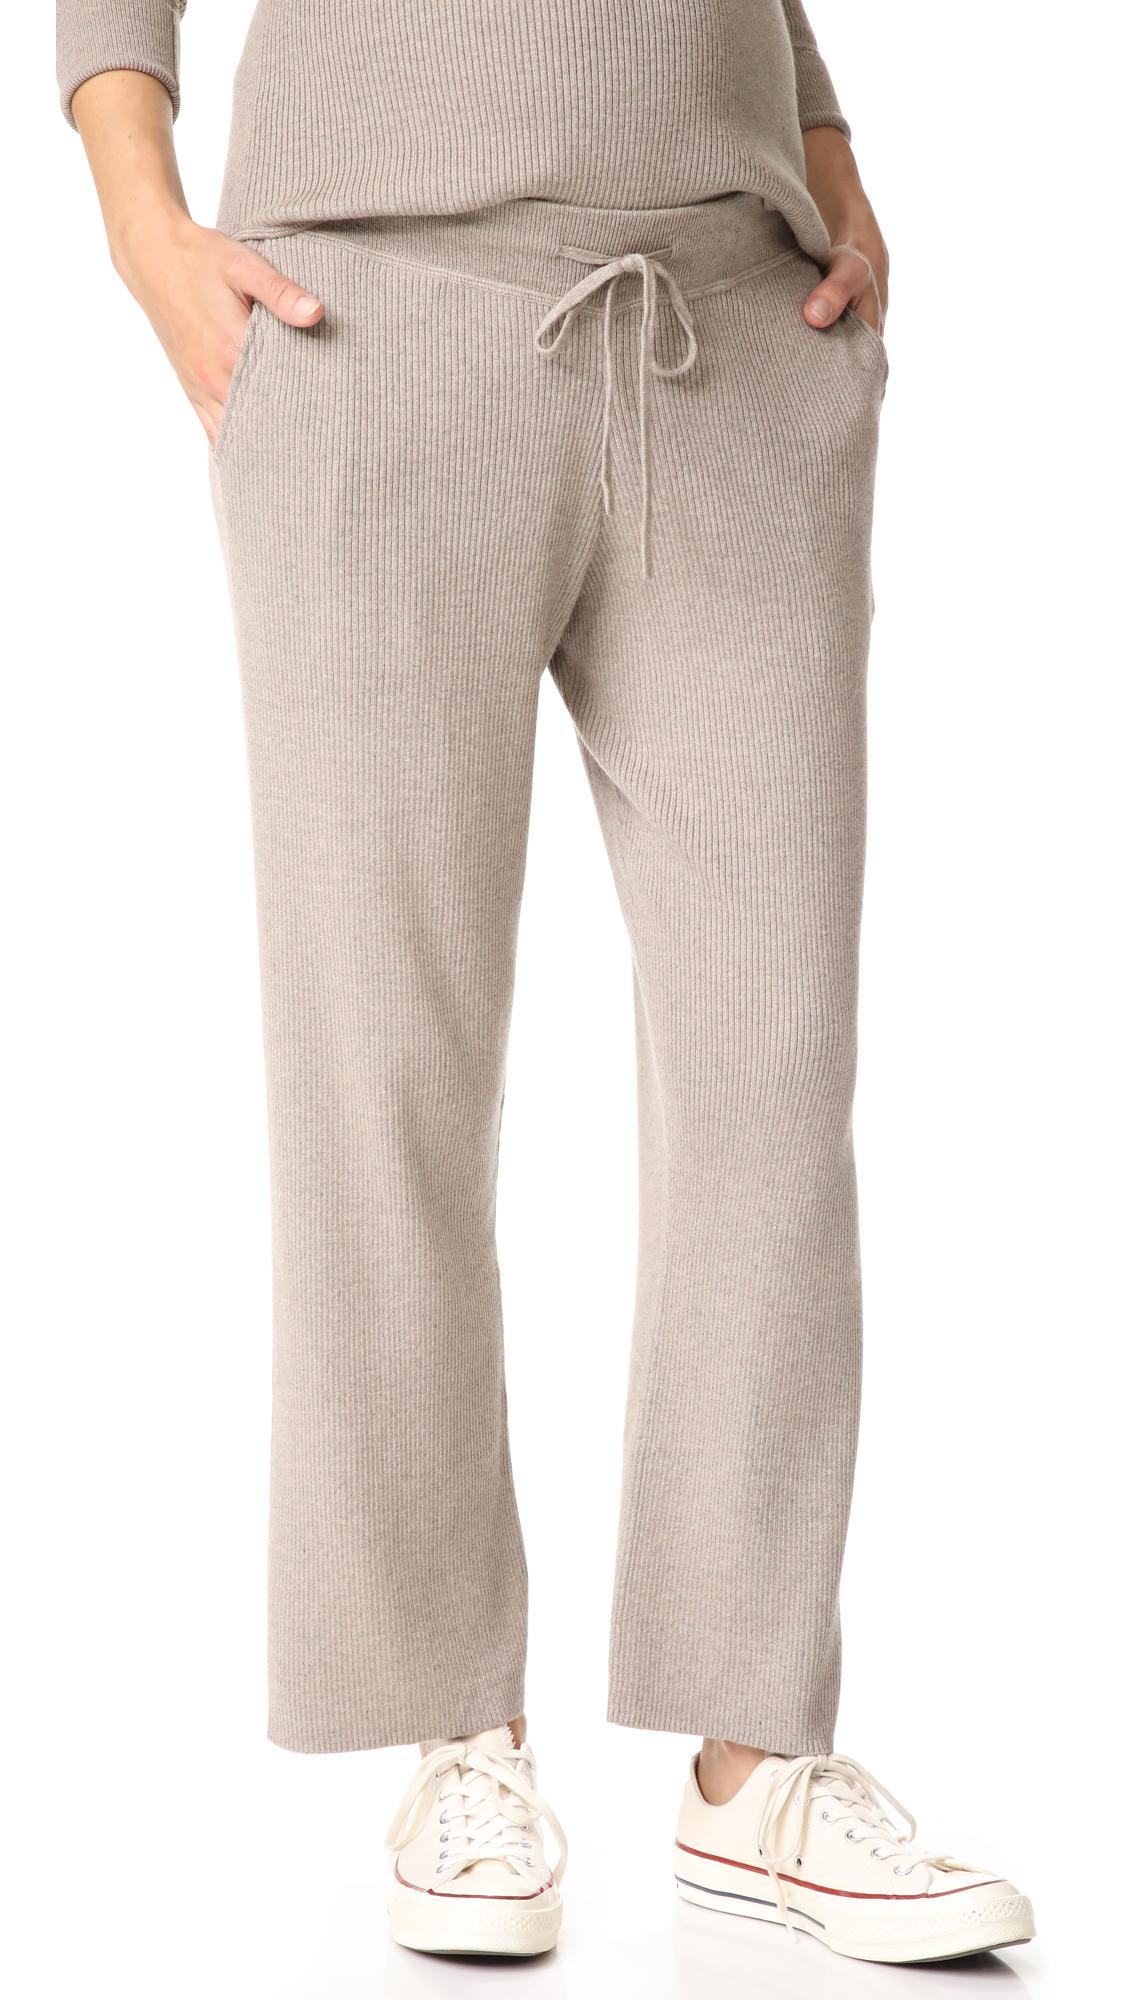 HATCH Ribbed Knit Trousers - Toast